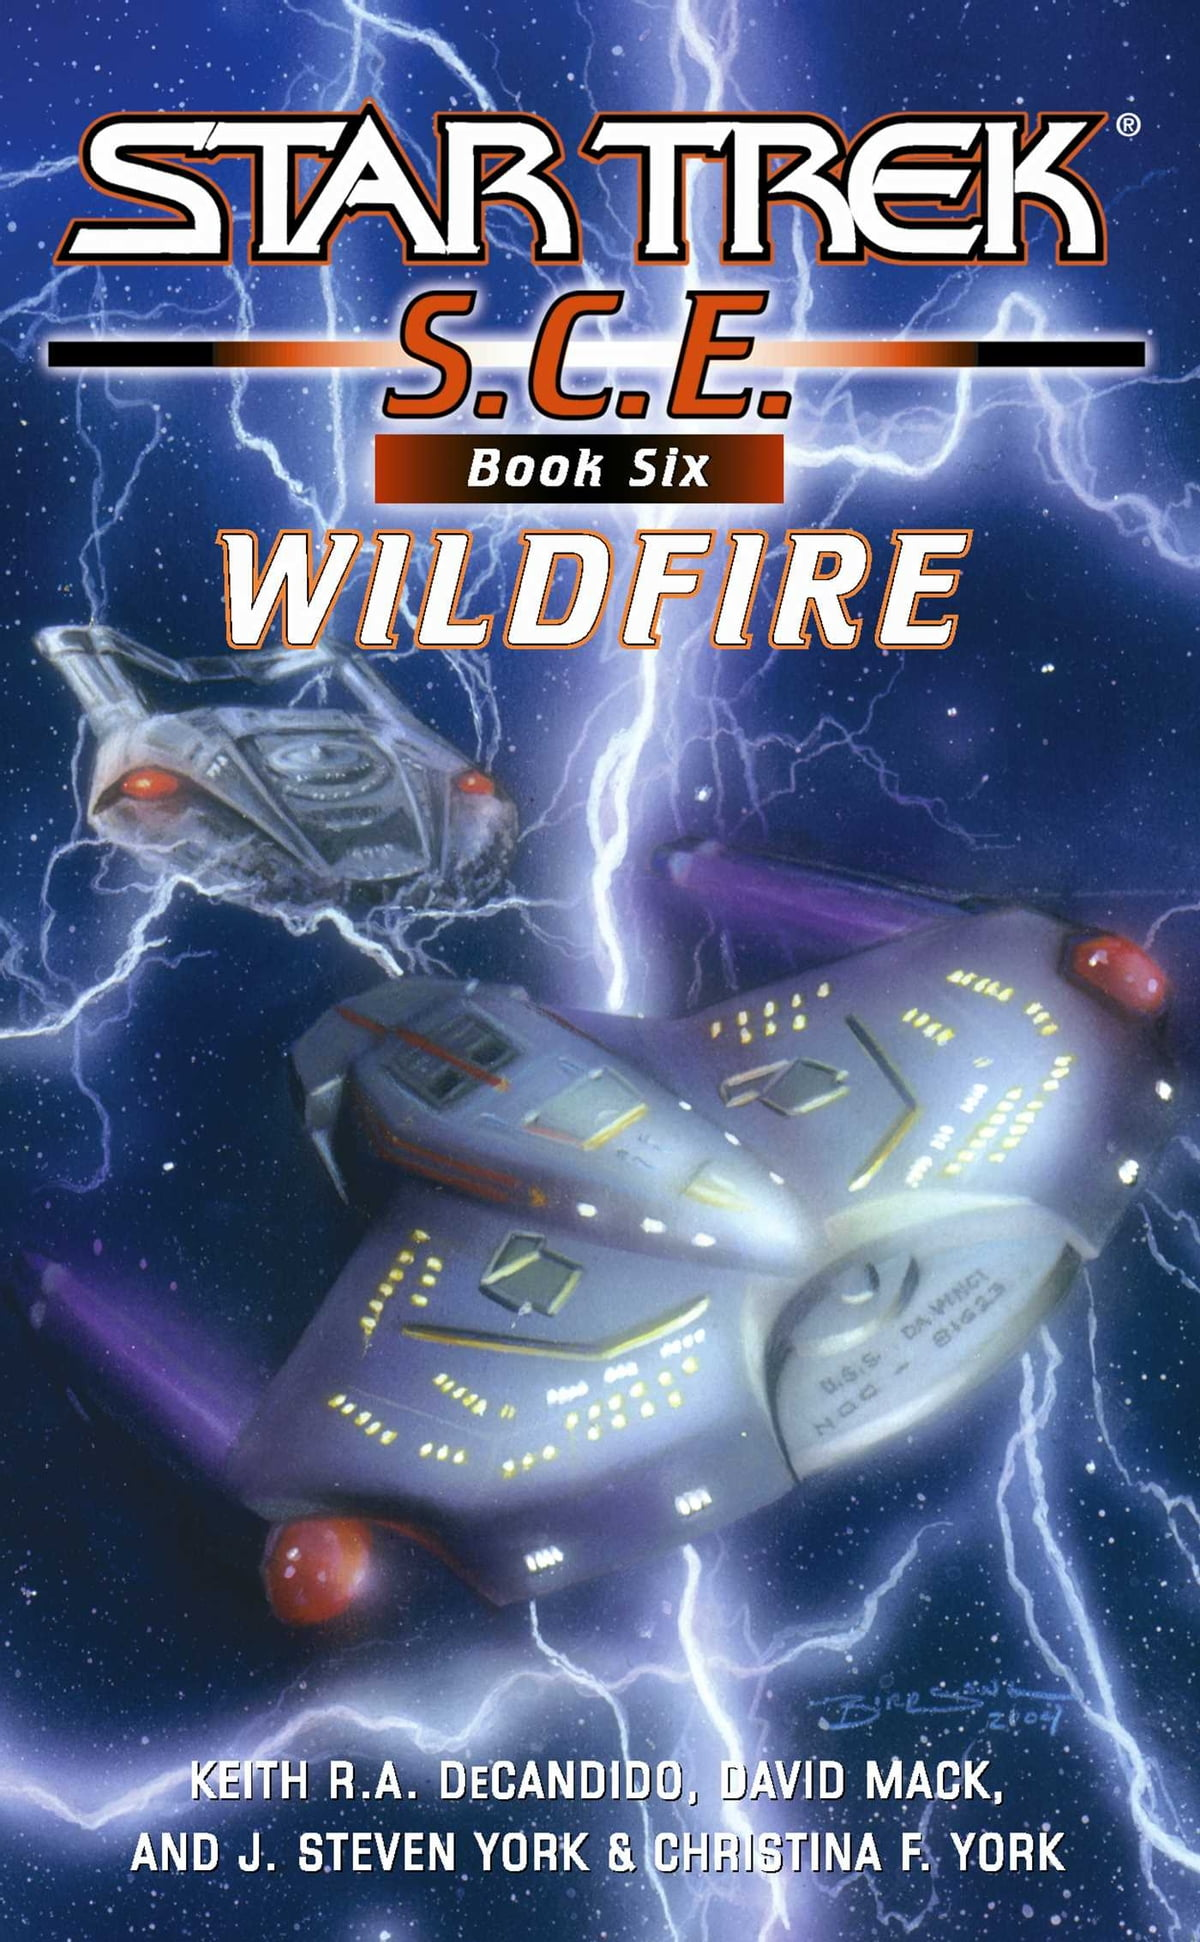 Star trek corps of engineers wildfire ebook by david mack star trek corps of engineers wildfire ebook by david mack 9781416507888 rakuten kobo fandeluxe Ebook collections